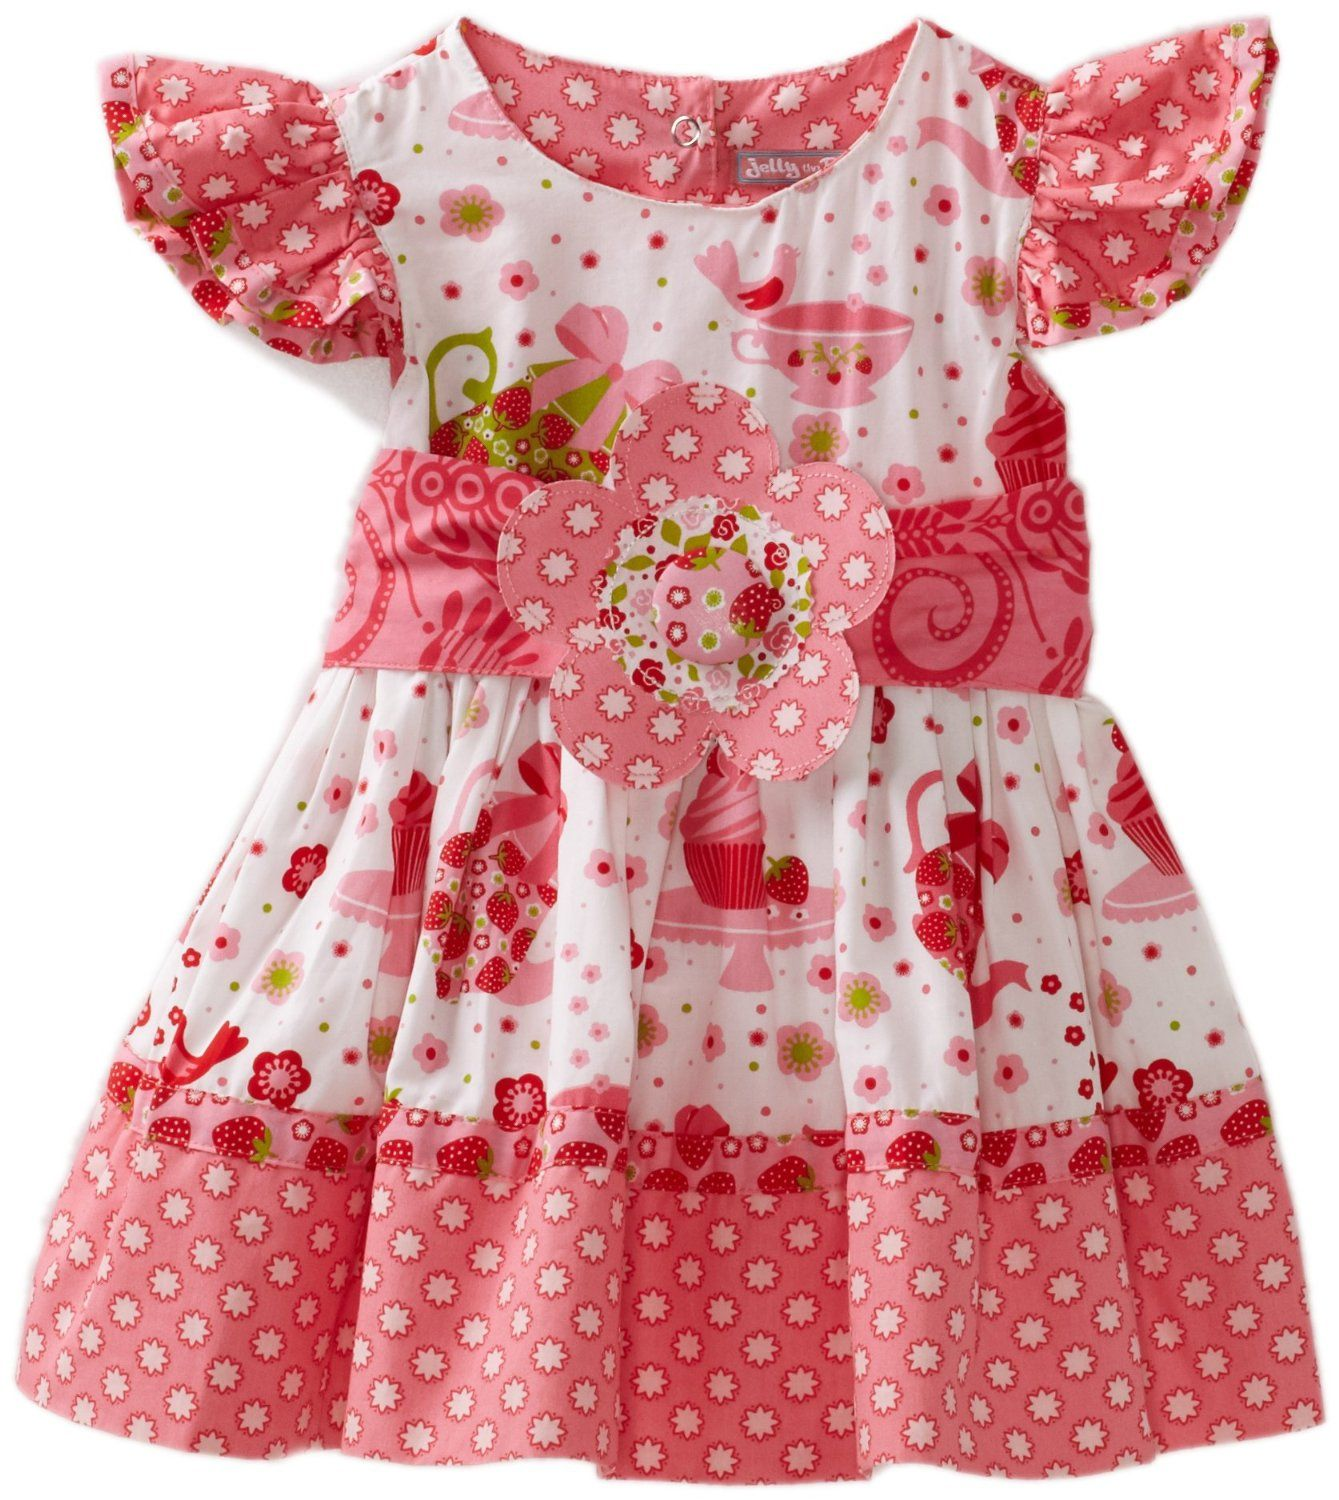 Jelly The Pug Baby Girls Infant Cake Princess Dress